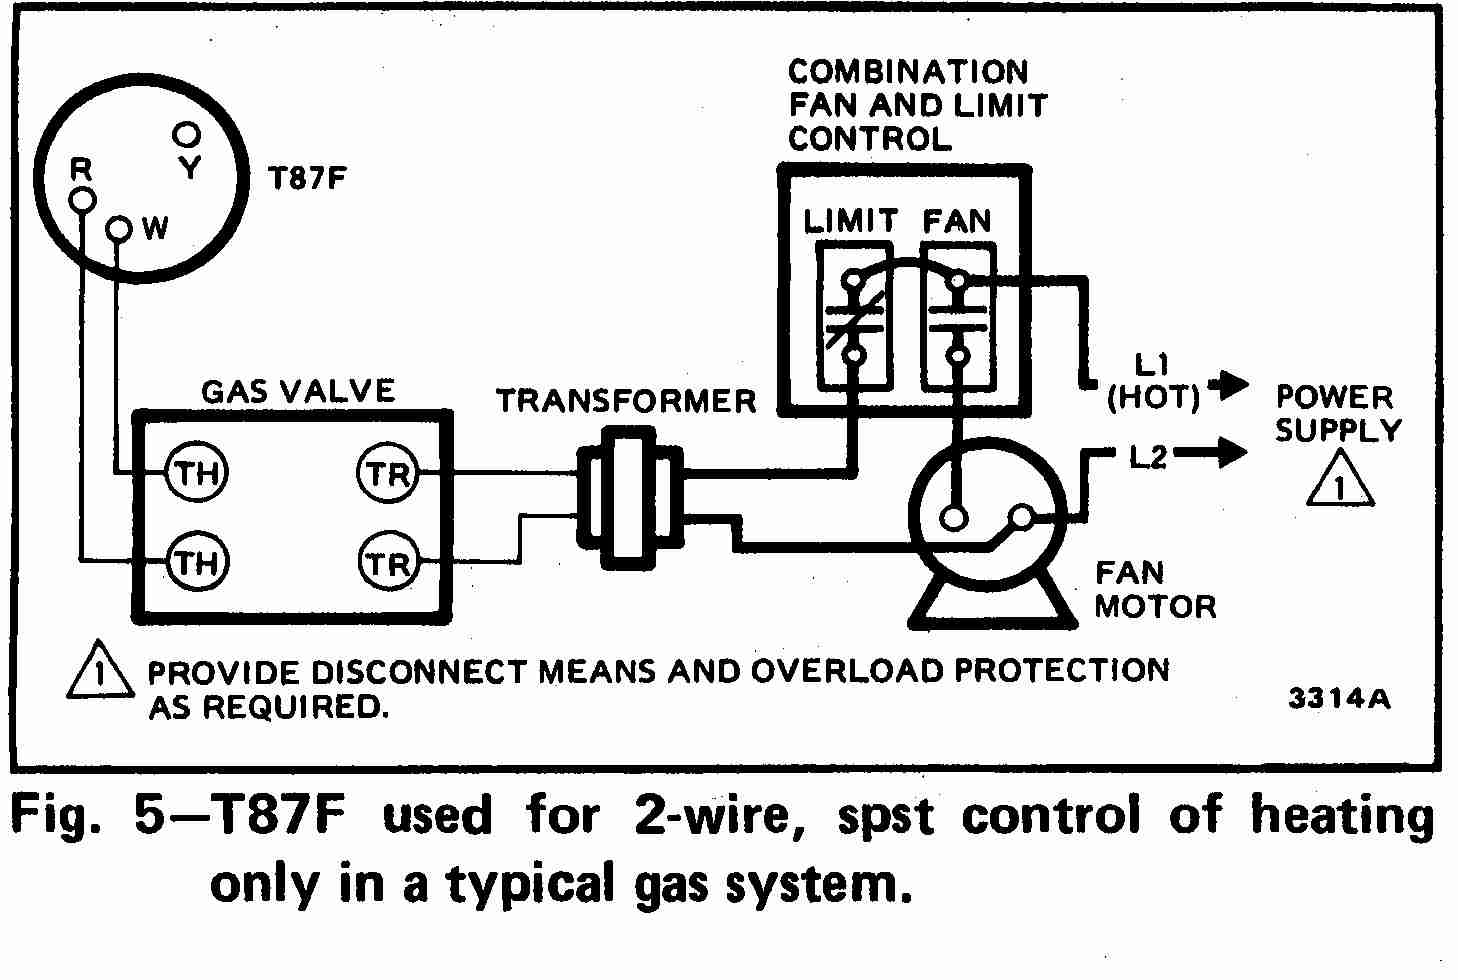 TT_T87F_0002_2Wg_DJF room thermostat wiring diagrams for hvac systems home furnace wiring diagram at edmiracle.co